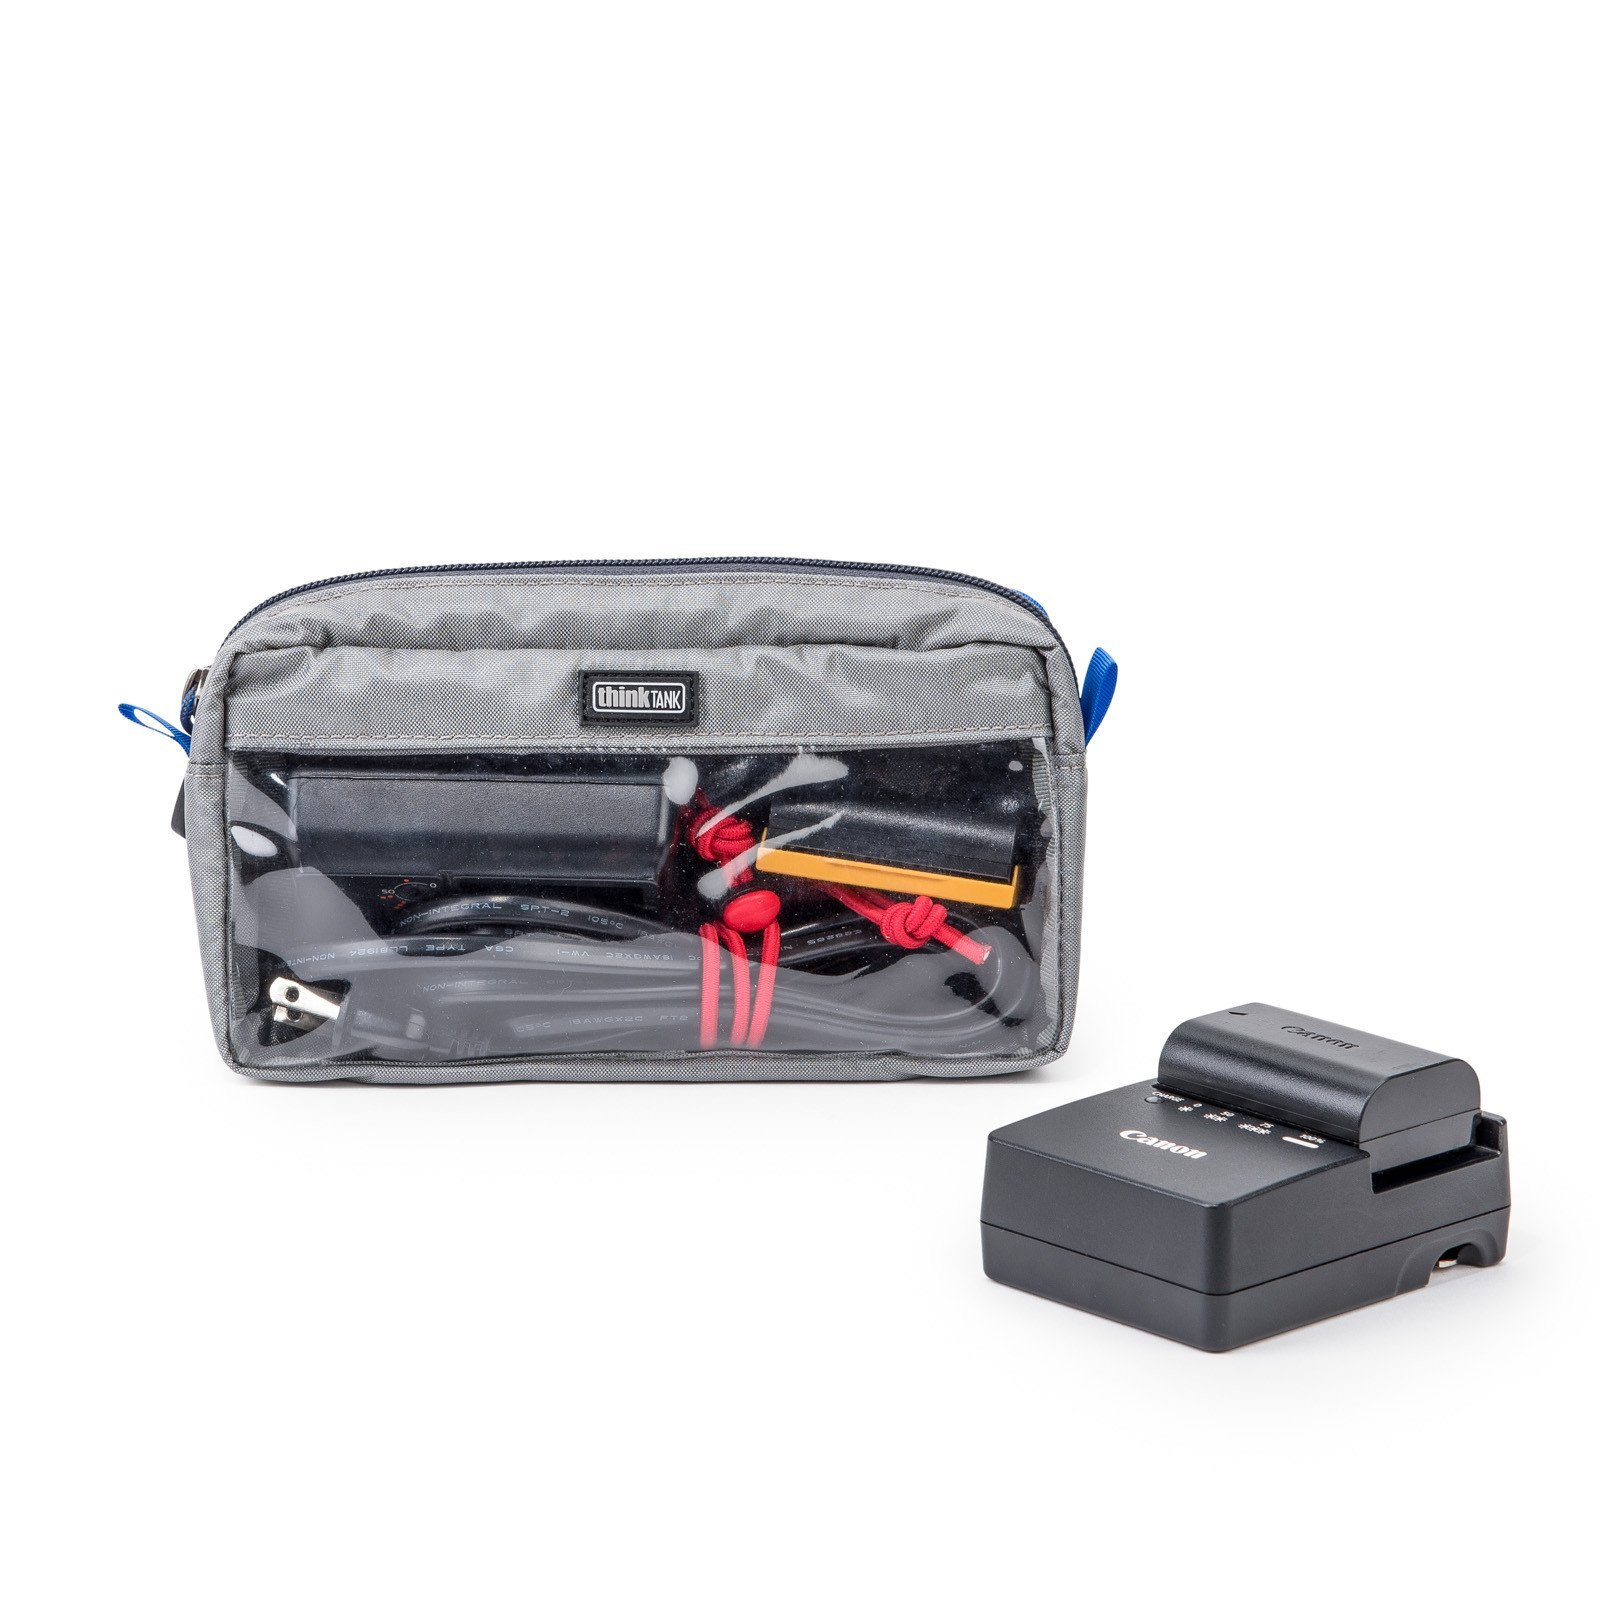 Think Tank Photo Cable Management 10 V2.0